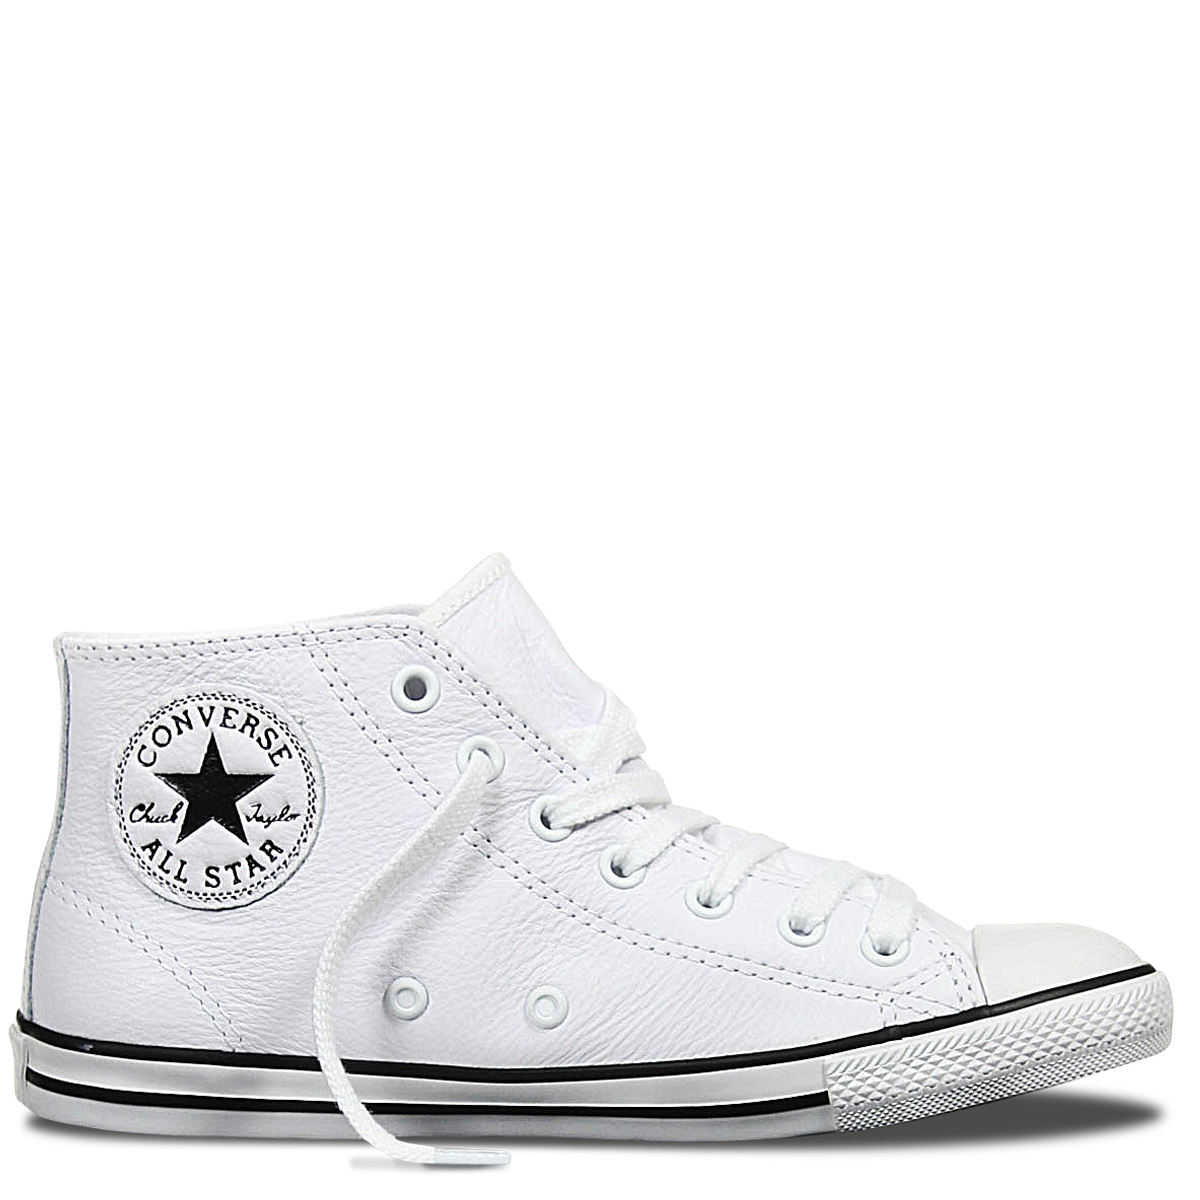 5b31be1b299c Chuck Taylor All Star Dainty Leather Mid White